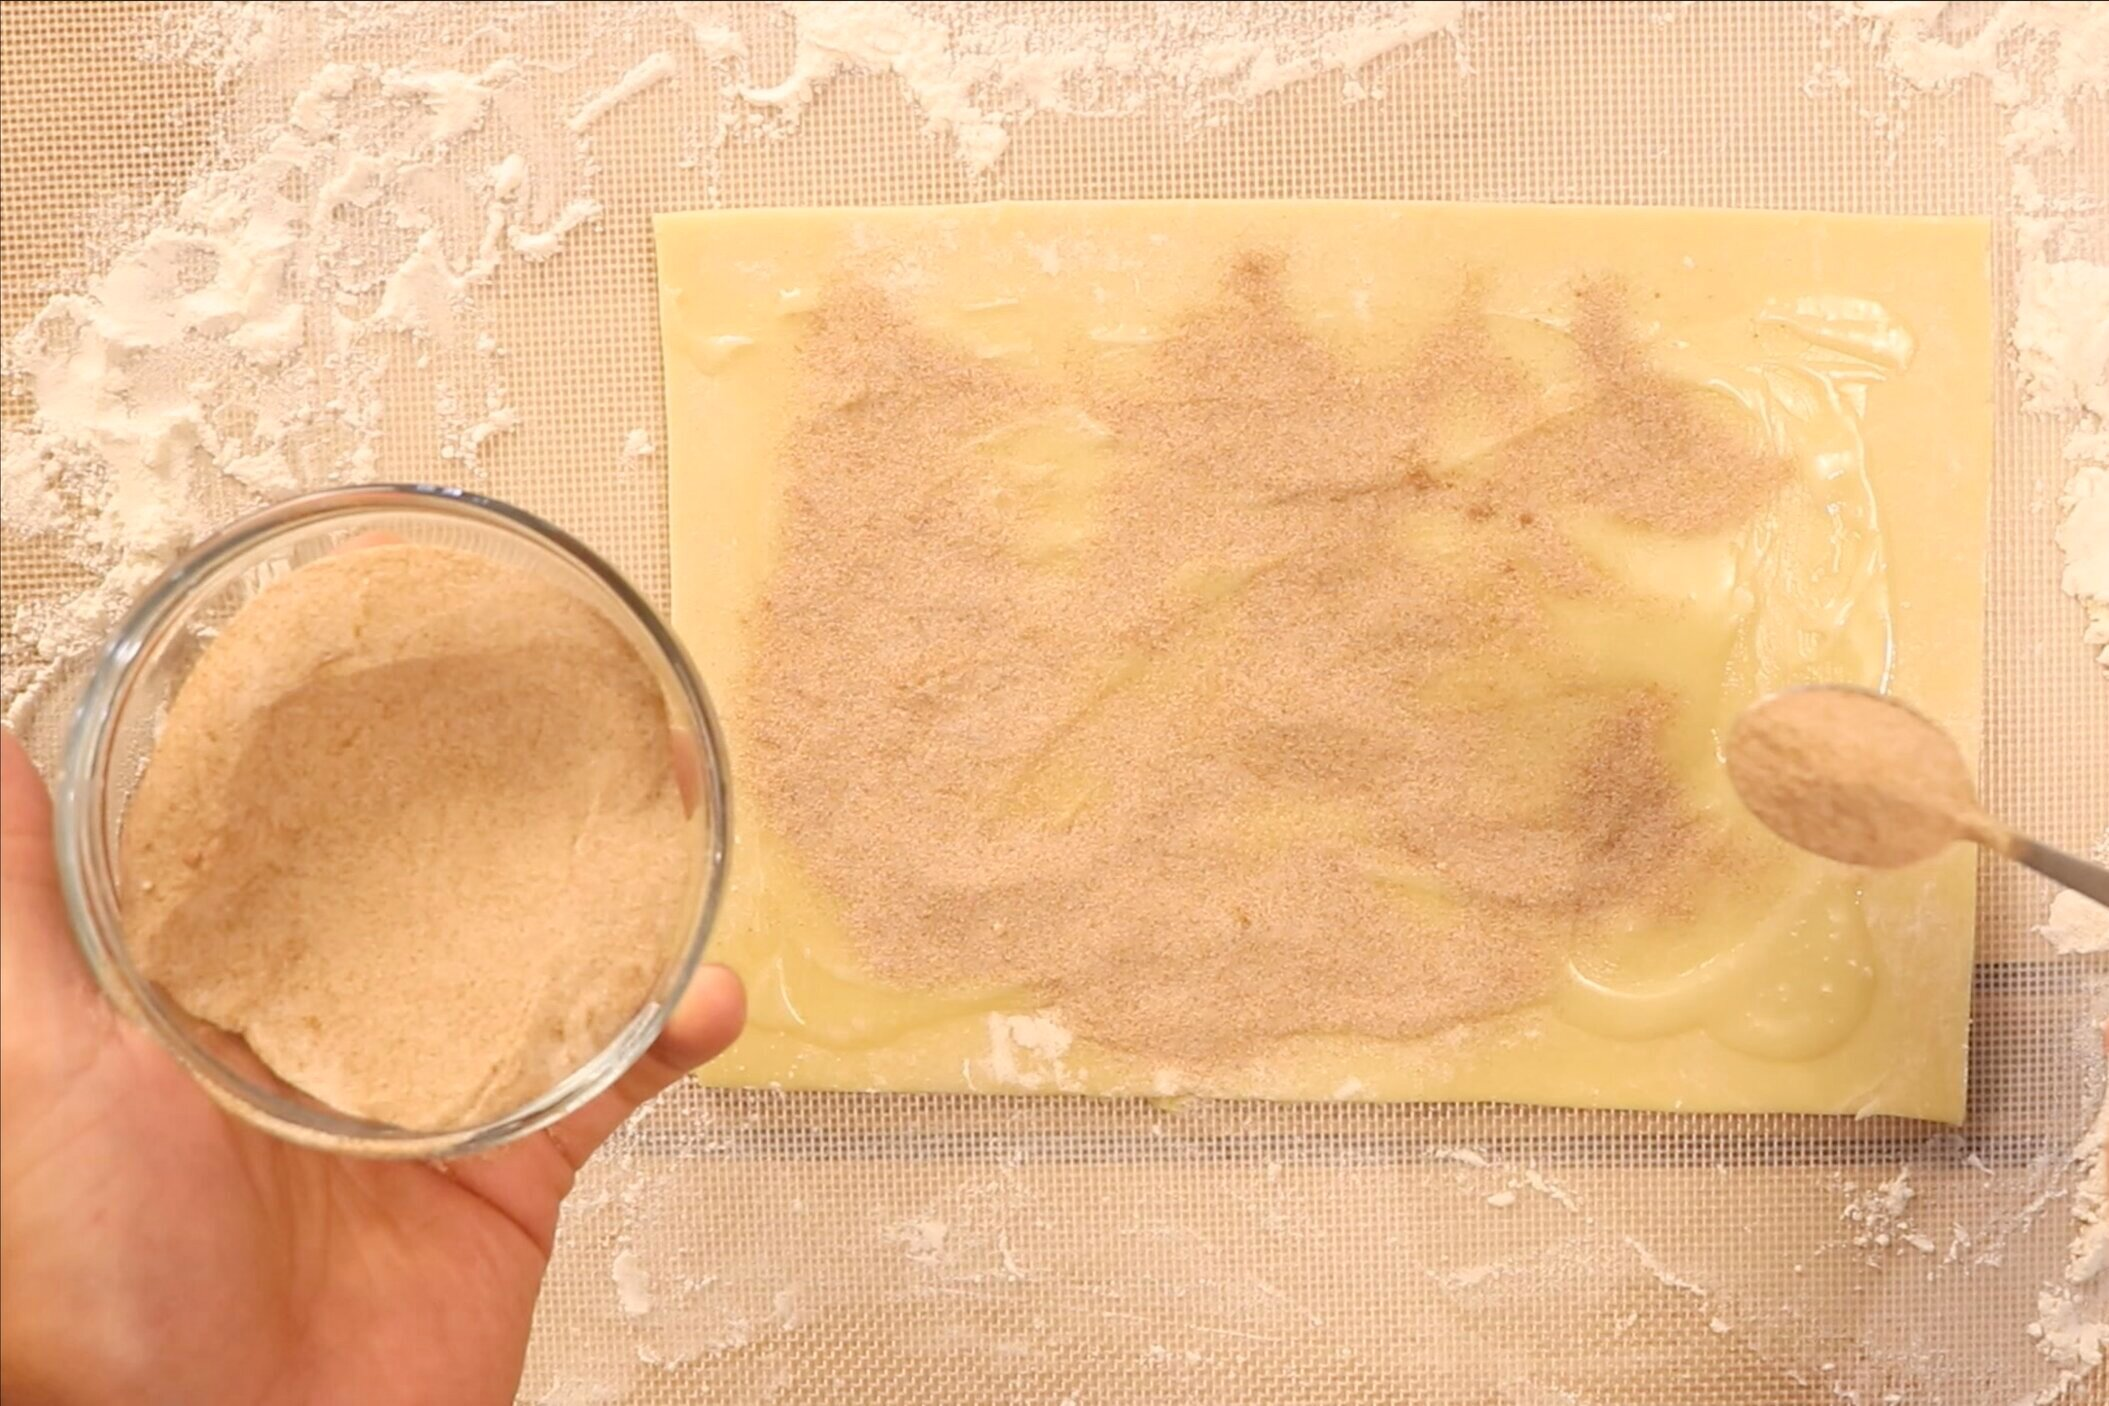 10. Mix the sugar and cinnamon together then evenly sprinkle over dough. -